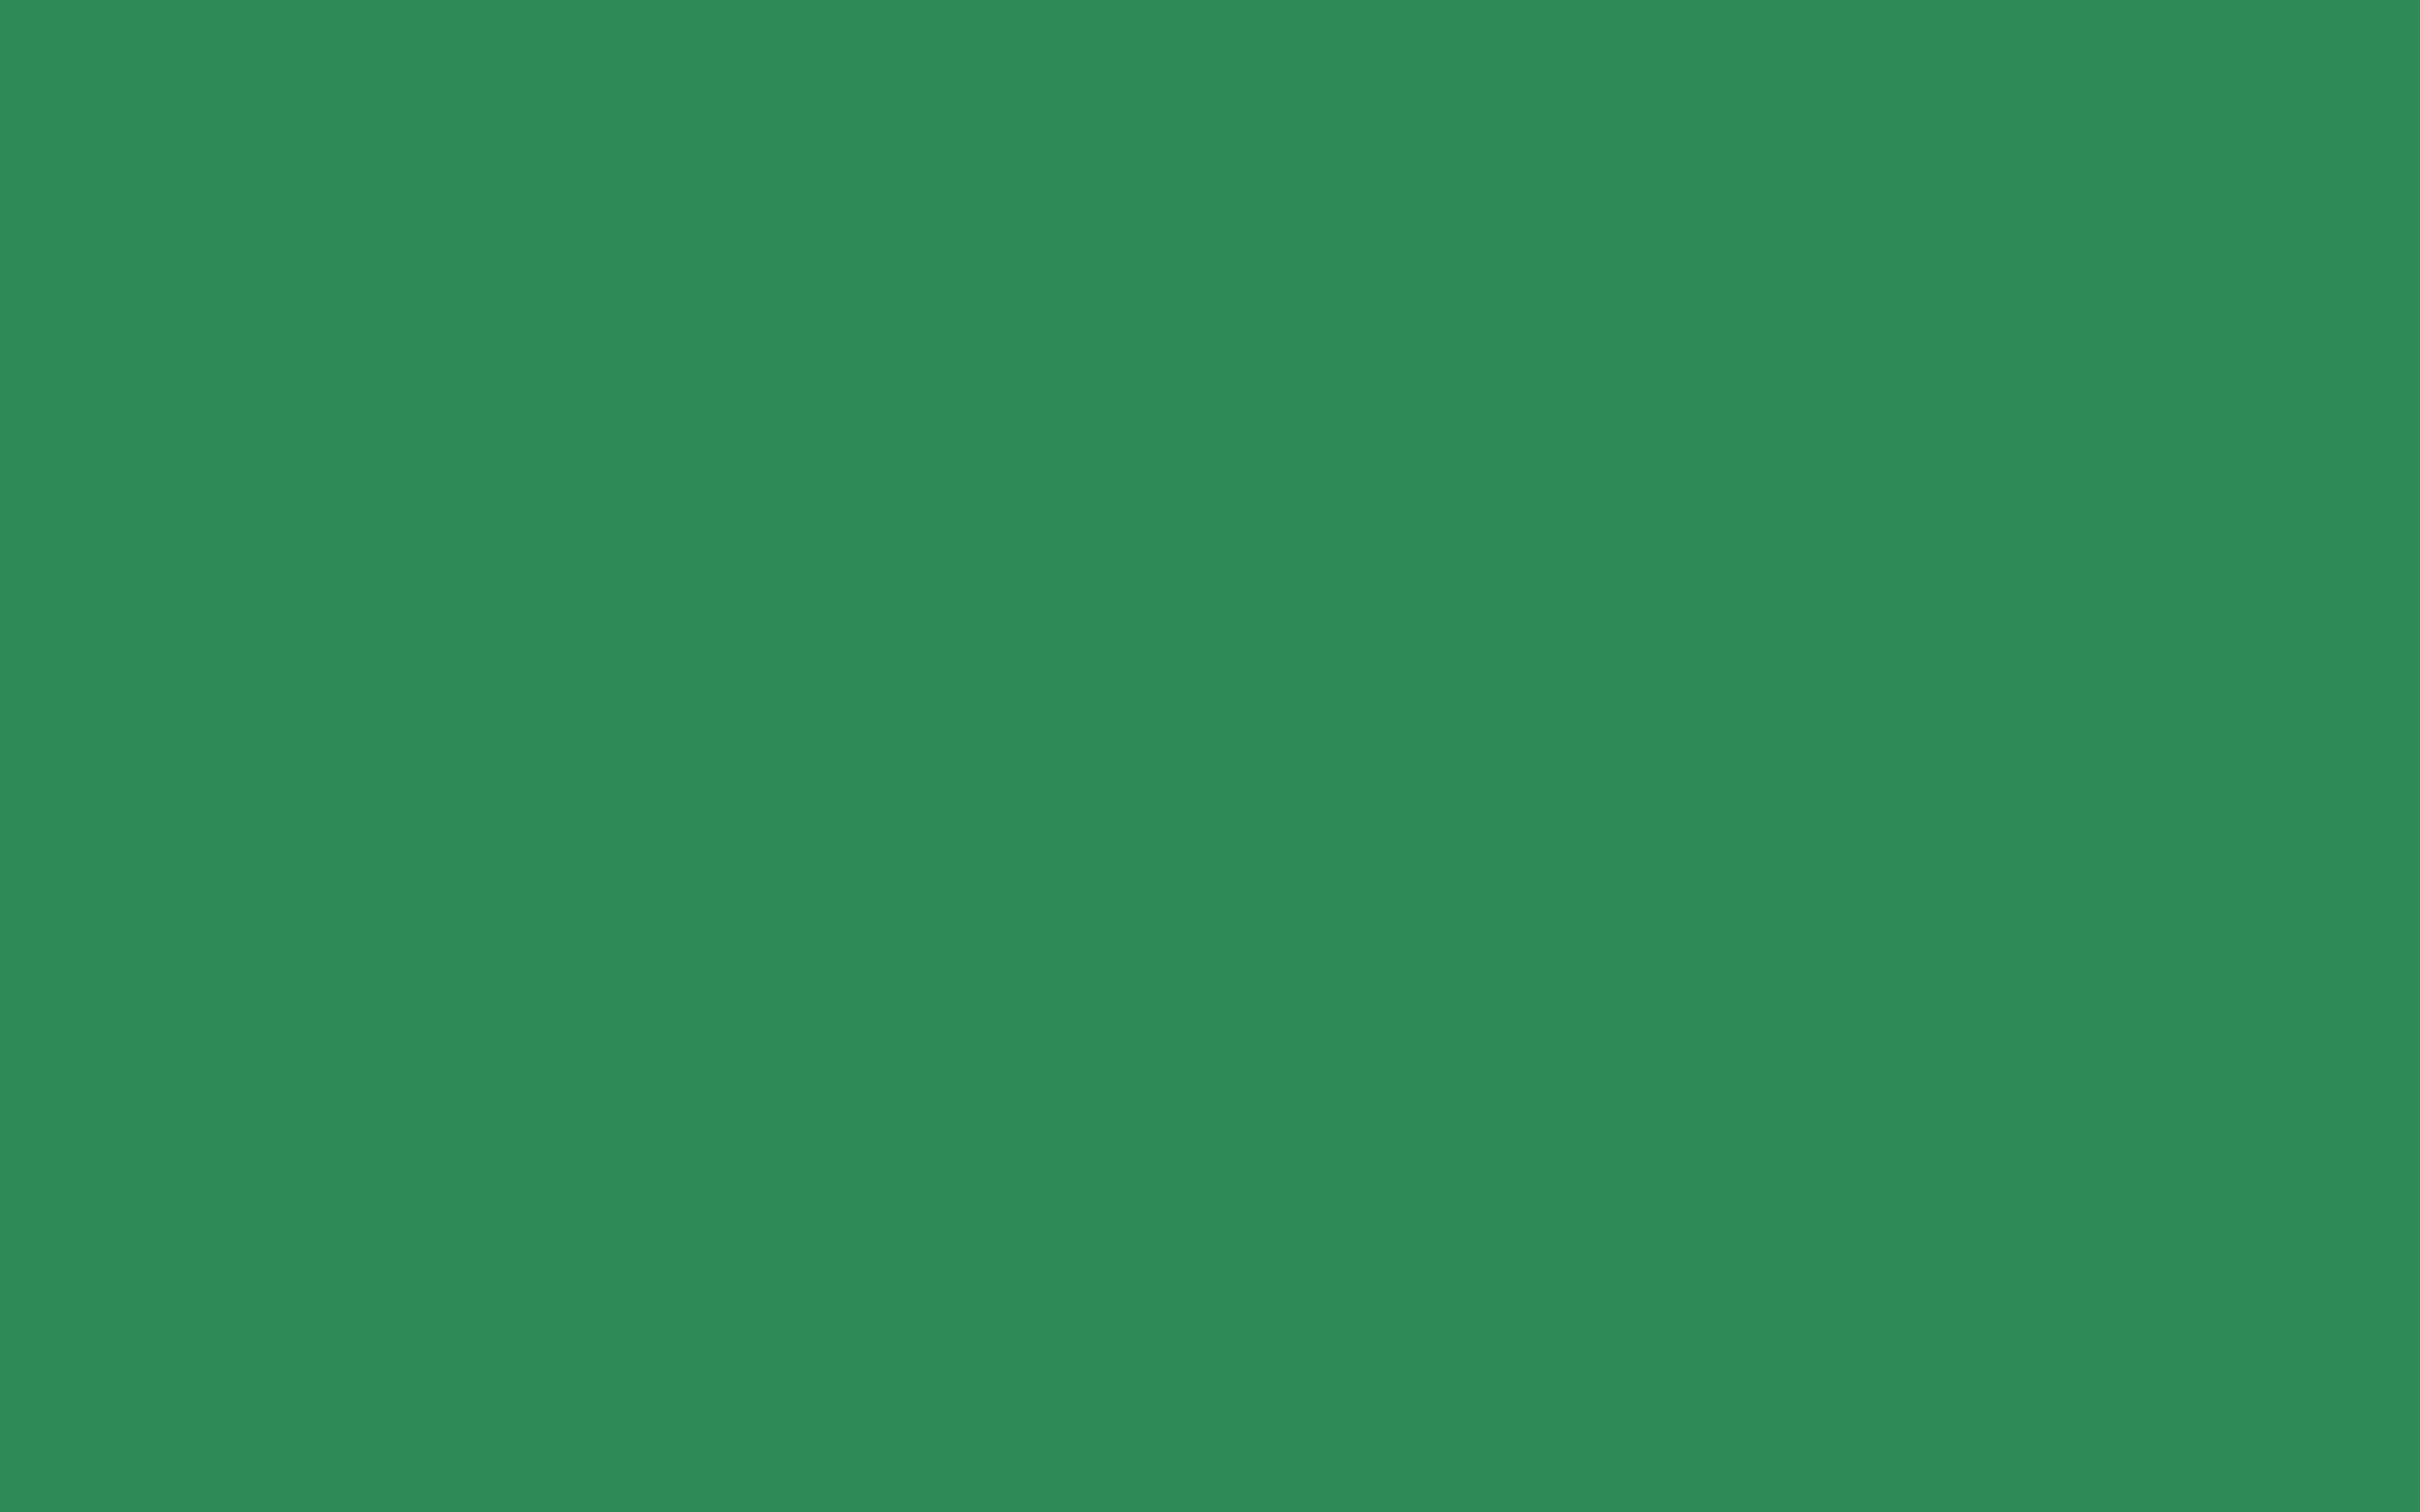 2560x1600 Sea Green Solid Color Background